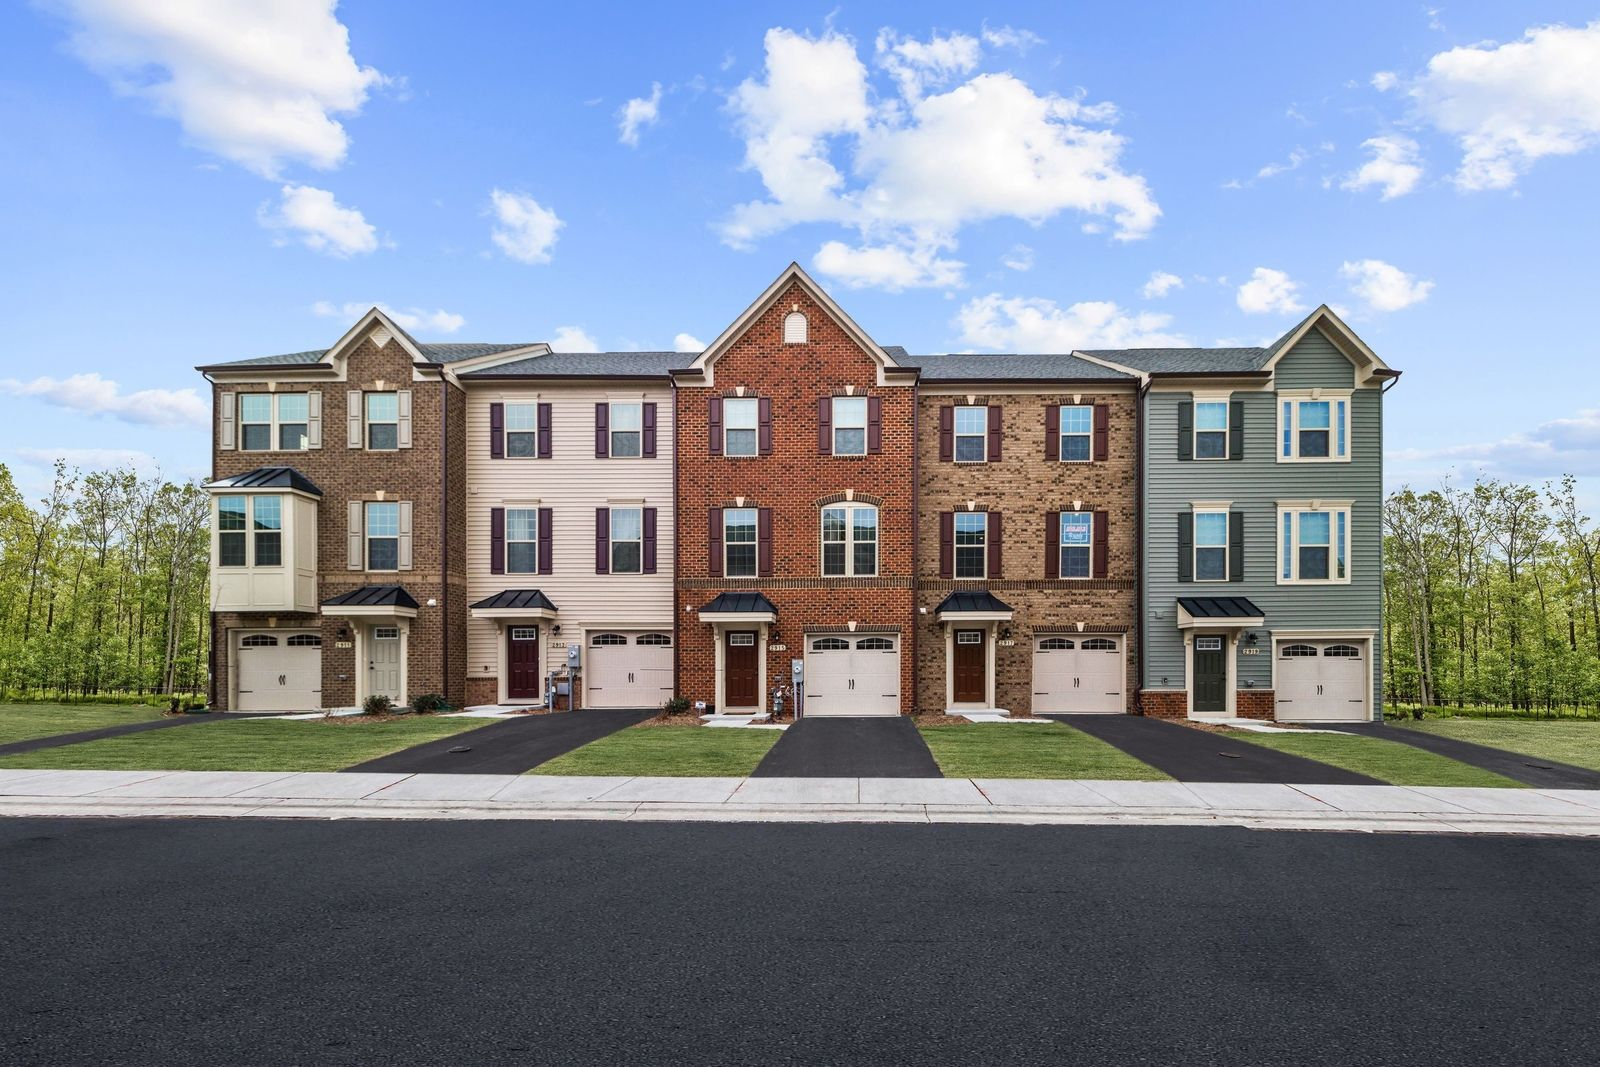 Parkside Reserve - Hanover's #1 selling community!:Take your first step and schedule your appointment today!Click here to get started.